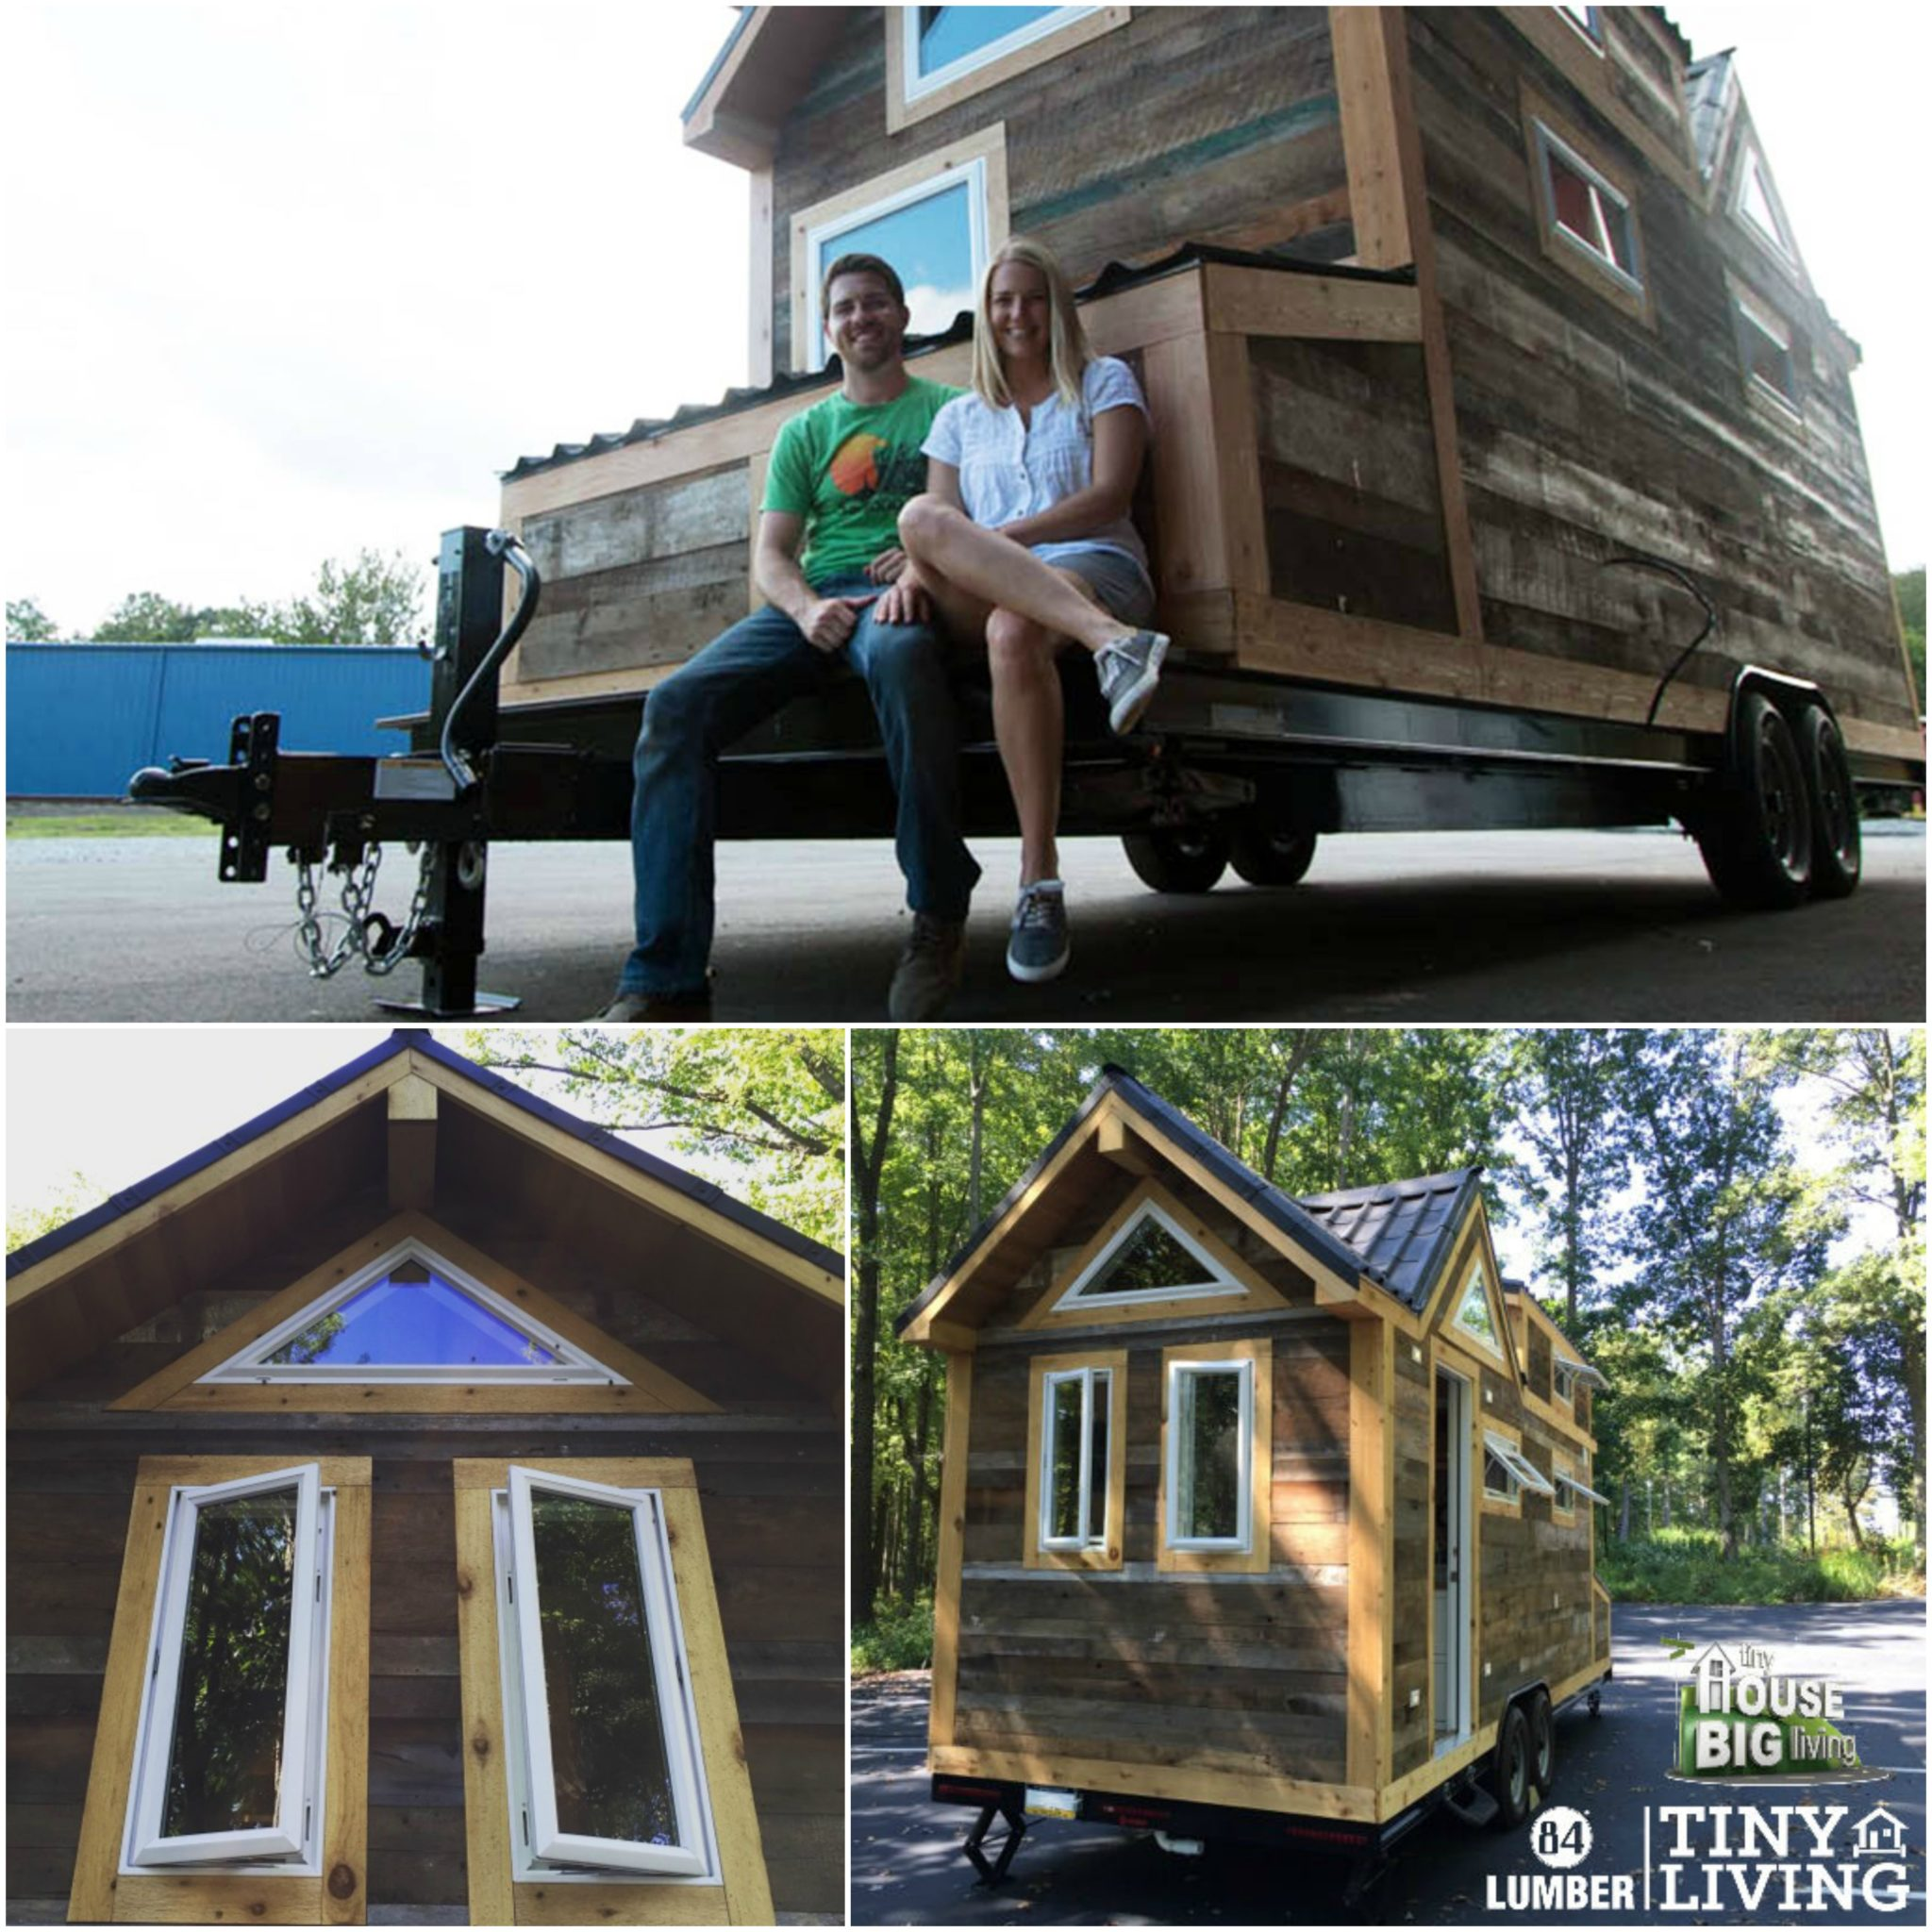 Tiny Living By 84 Lumber Featured On DIY Network Show